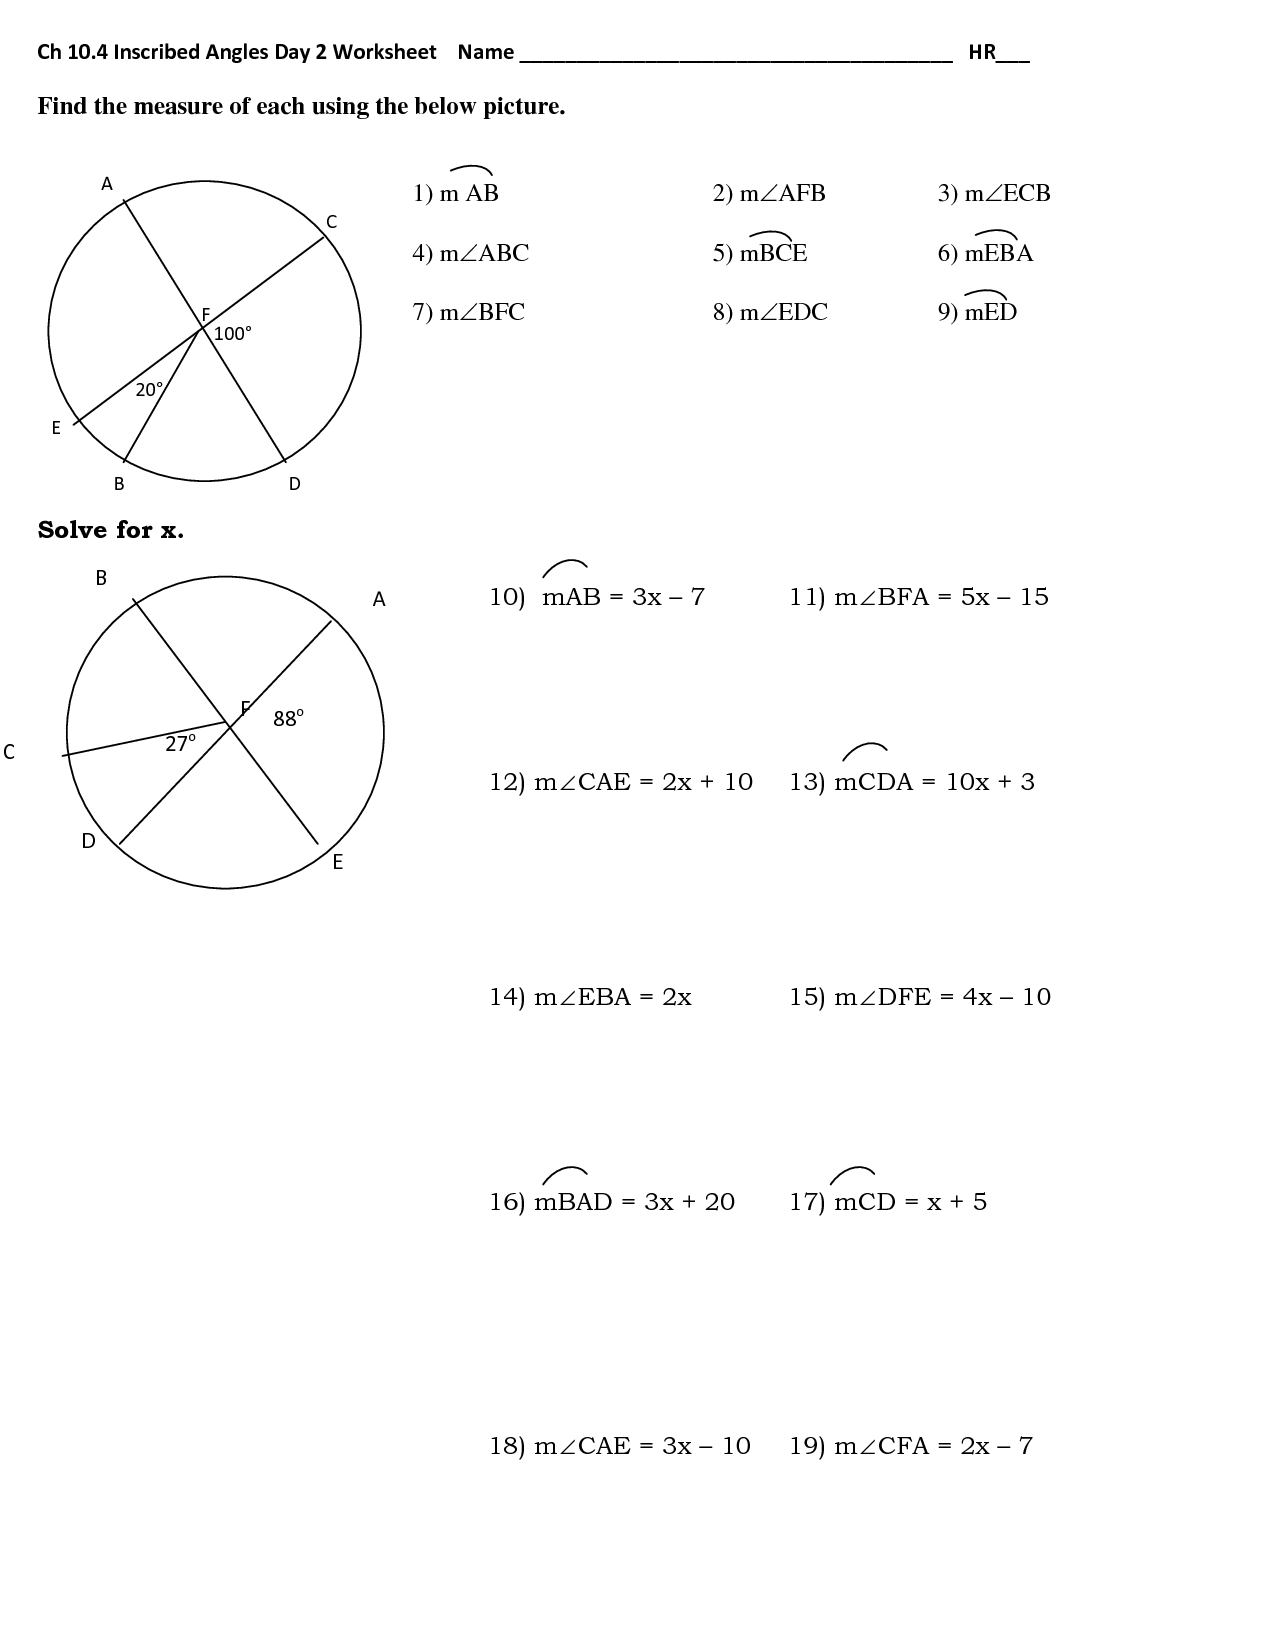 Inscribed Angle Worksheet With Answers - Ivuyteq